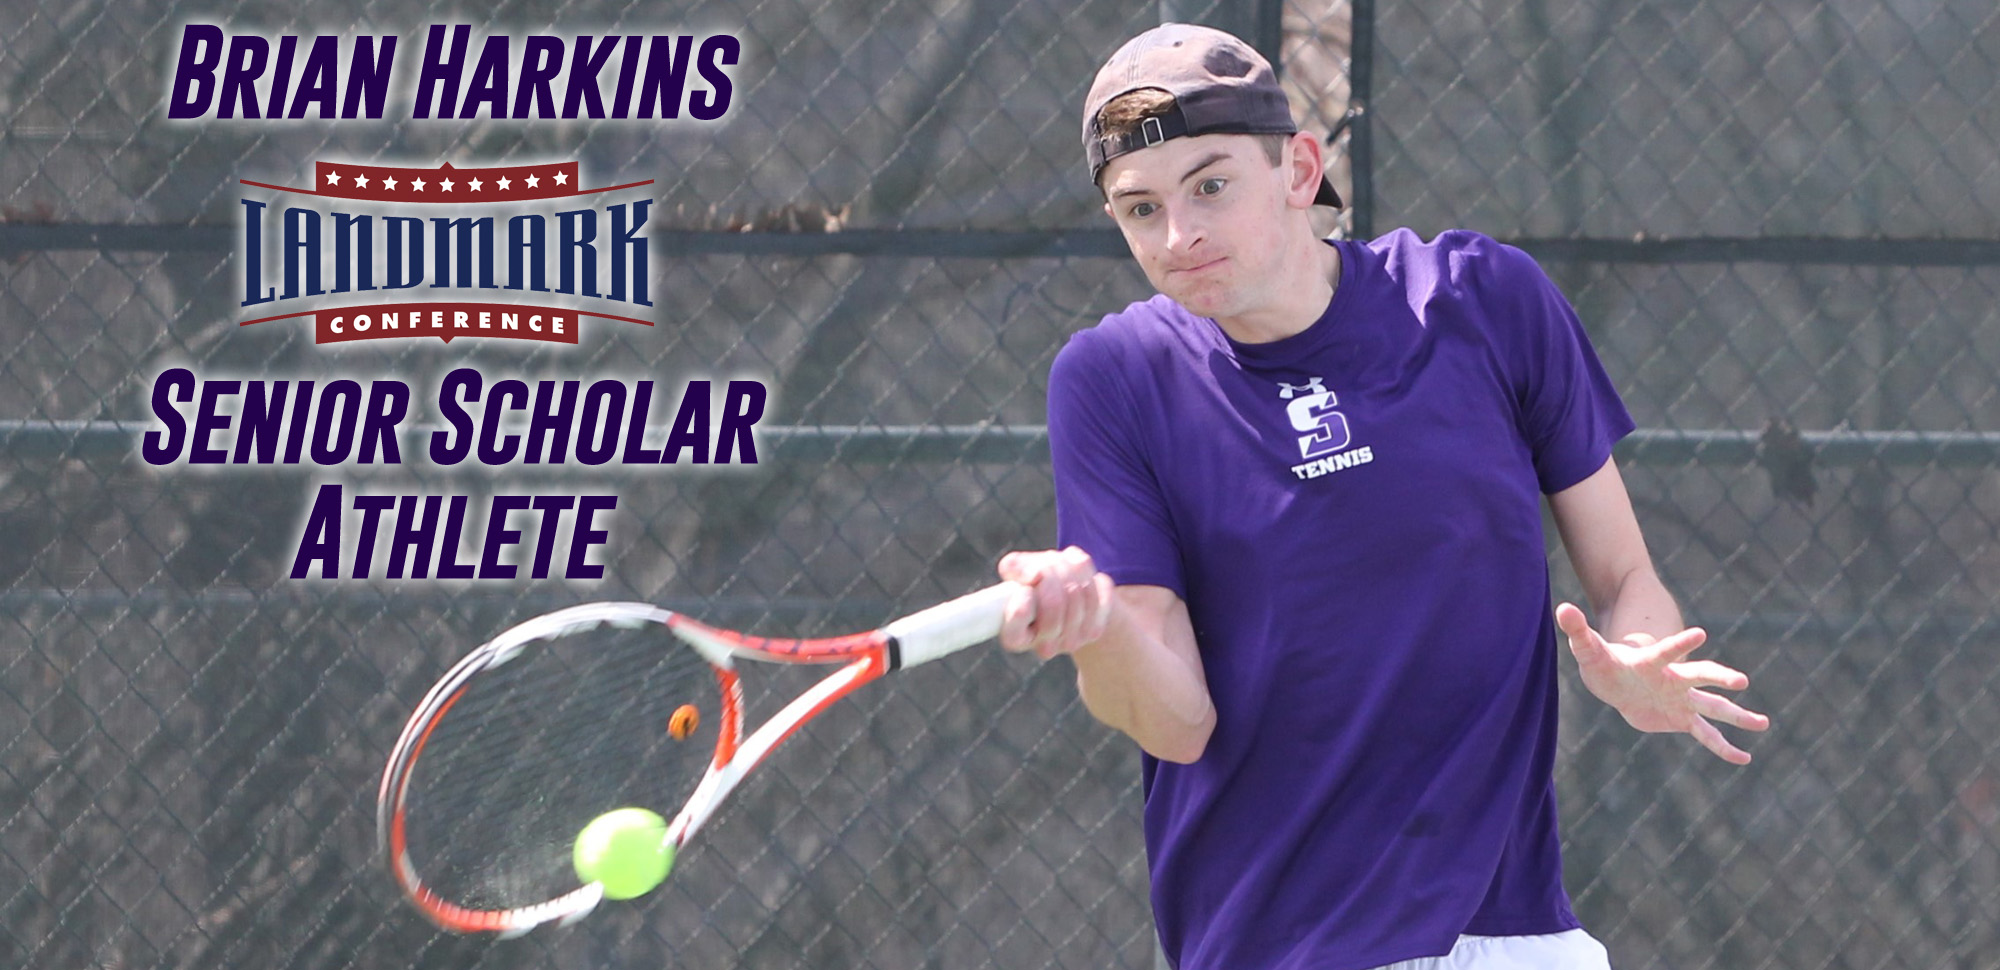 Senior Brian Harkins was named the Landmark Conference Senior Scholar Athlete for men's tennis on Thursday. © Photo by Timothy R. Dougherty / doubleeaglephotography.com